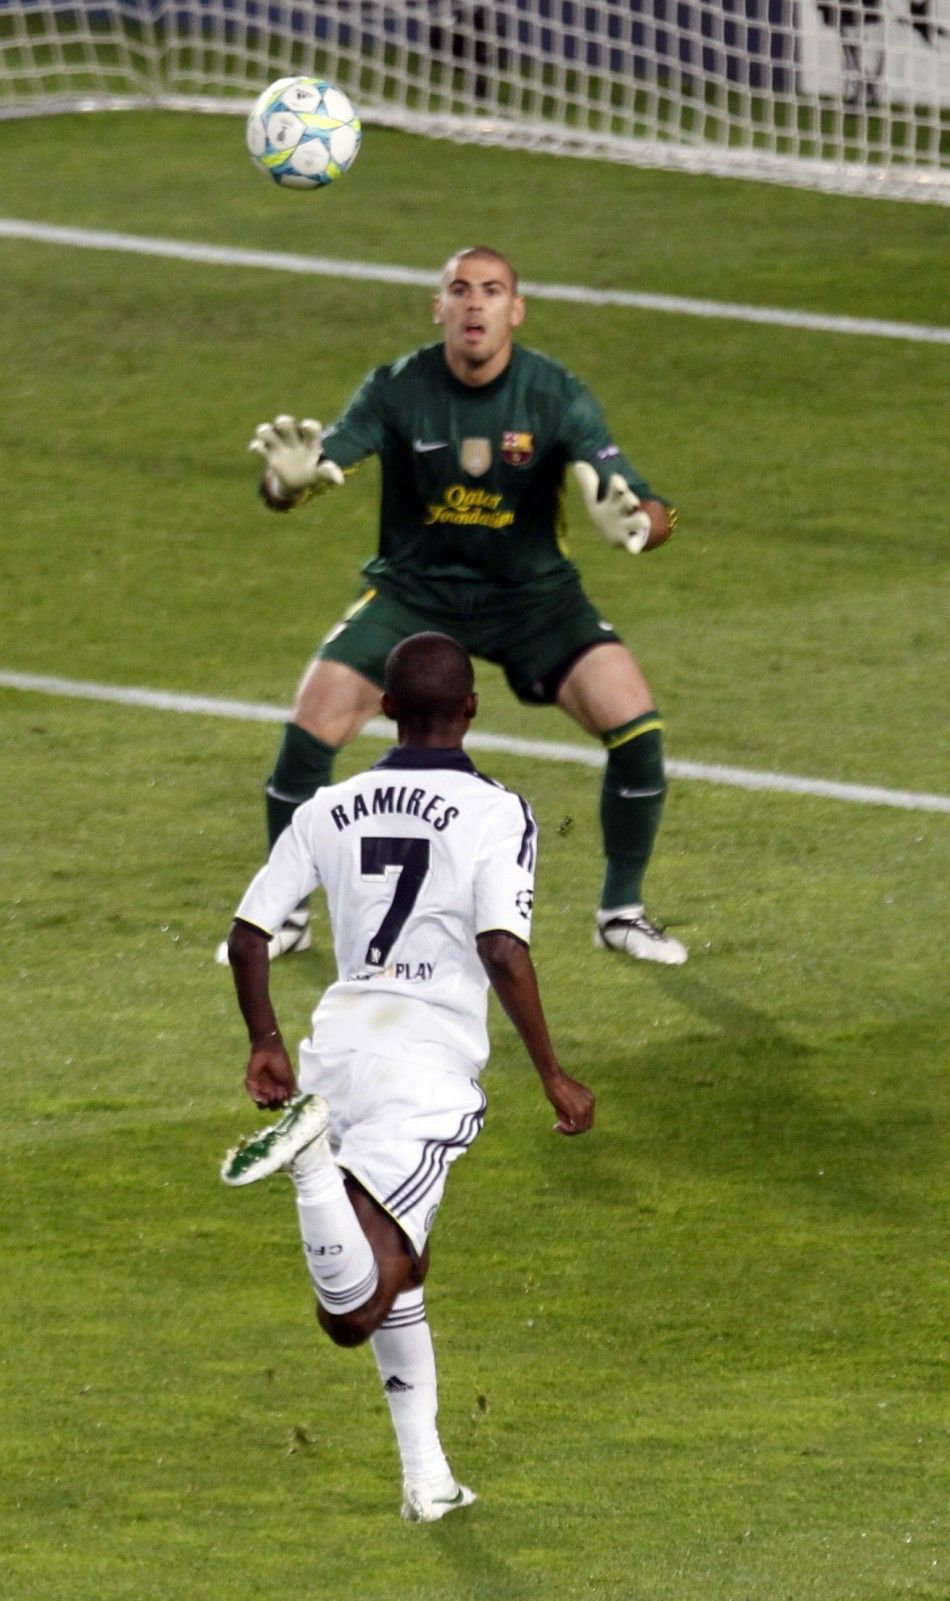 Ramires scored an excellent goal against Barcelona in the